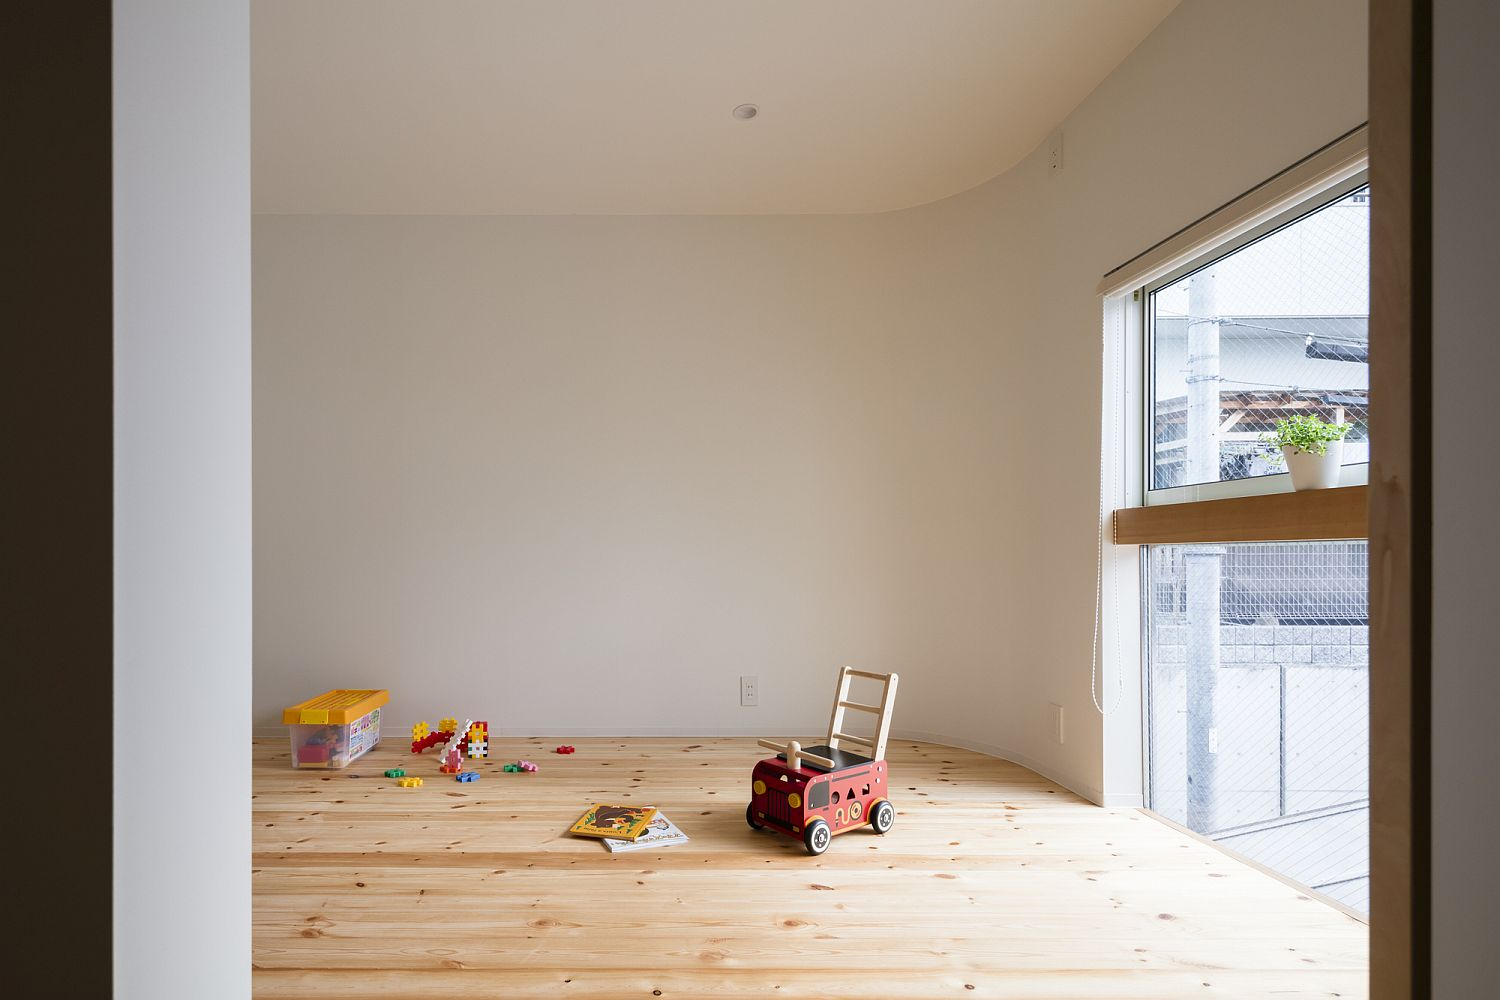 Upper level play room of the Melt House with ample natural light